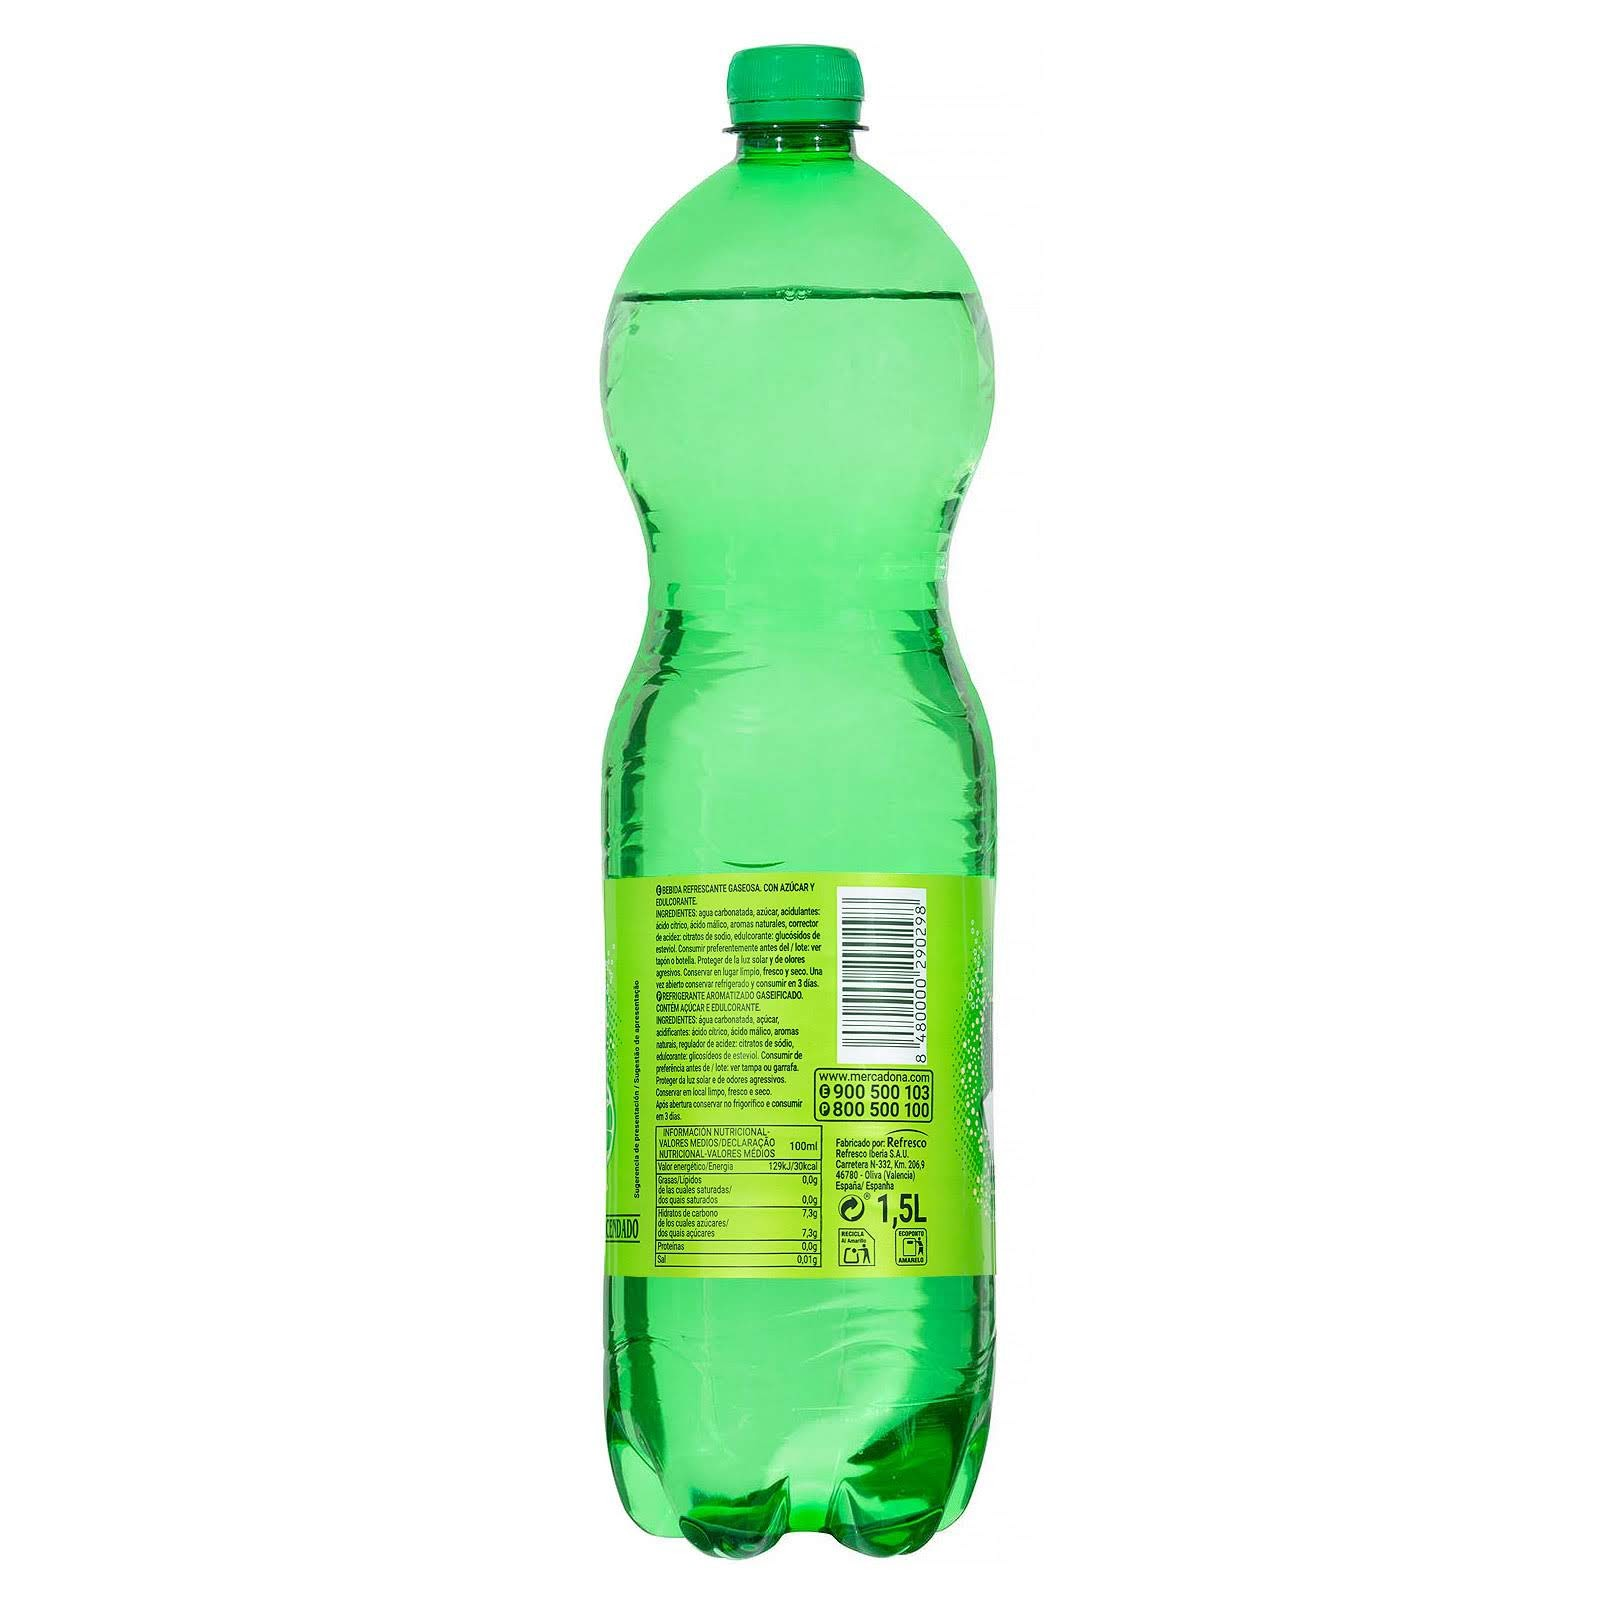 Refresco de lima-limón Fresh Gas Hacendado